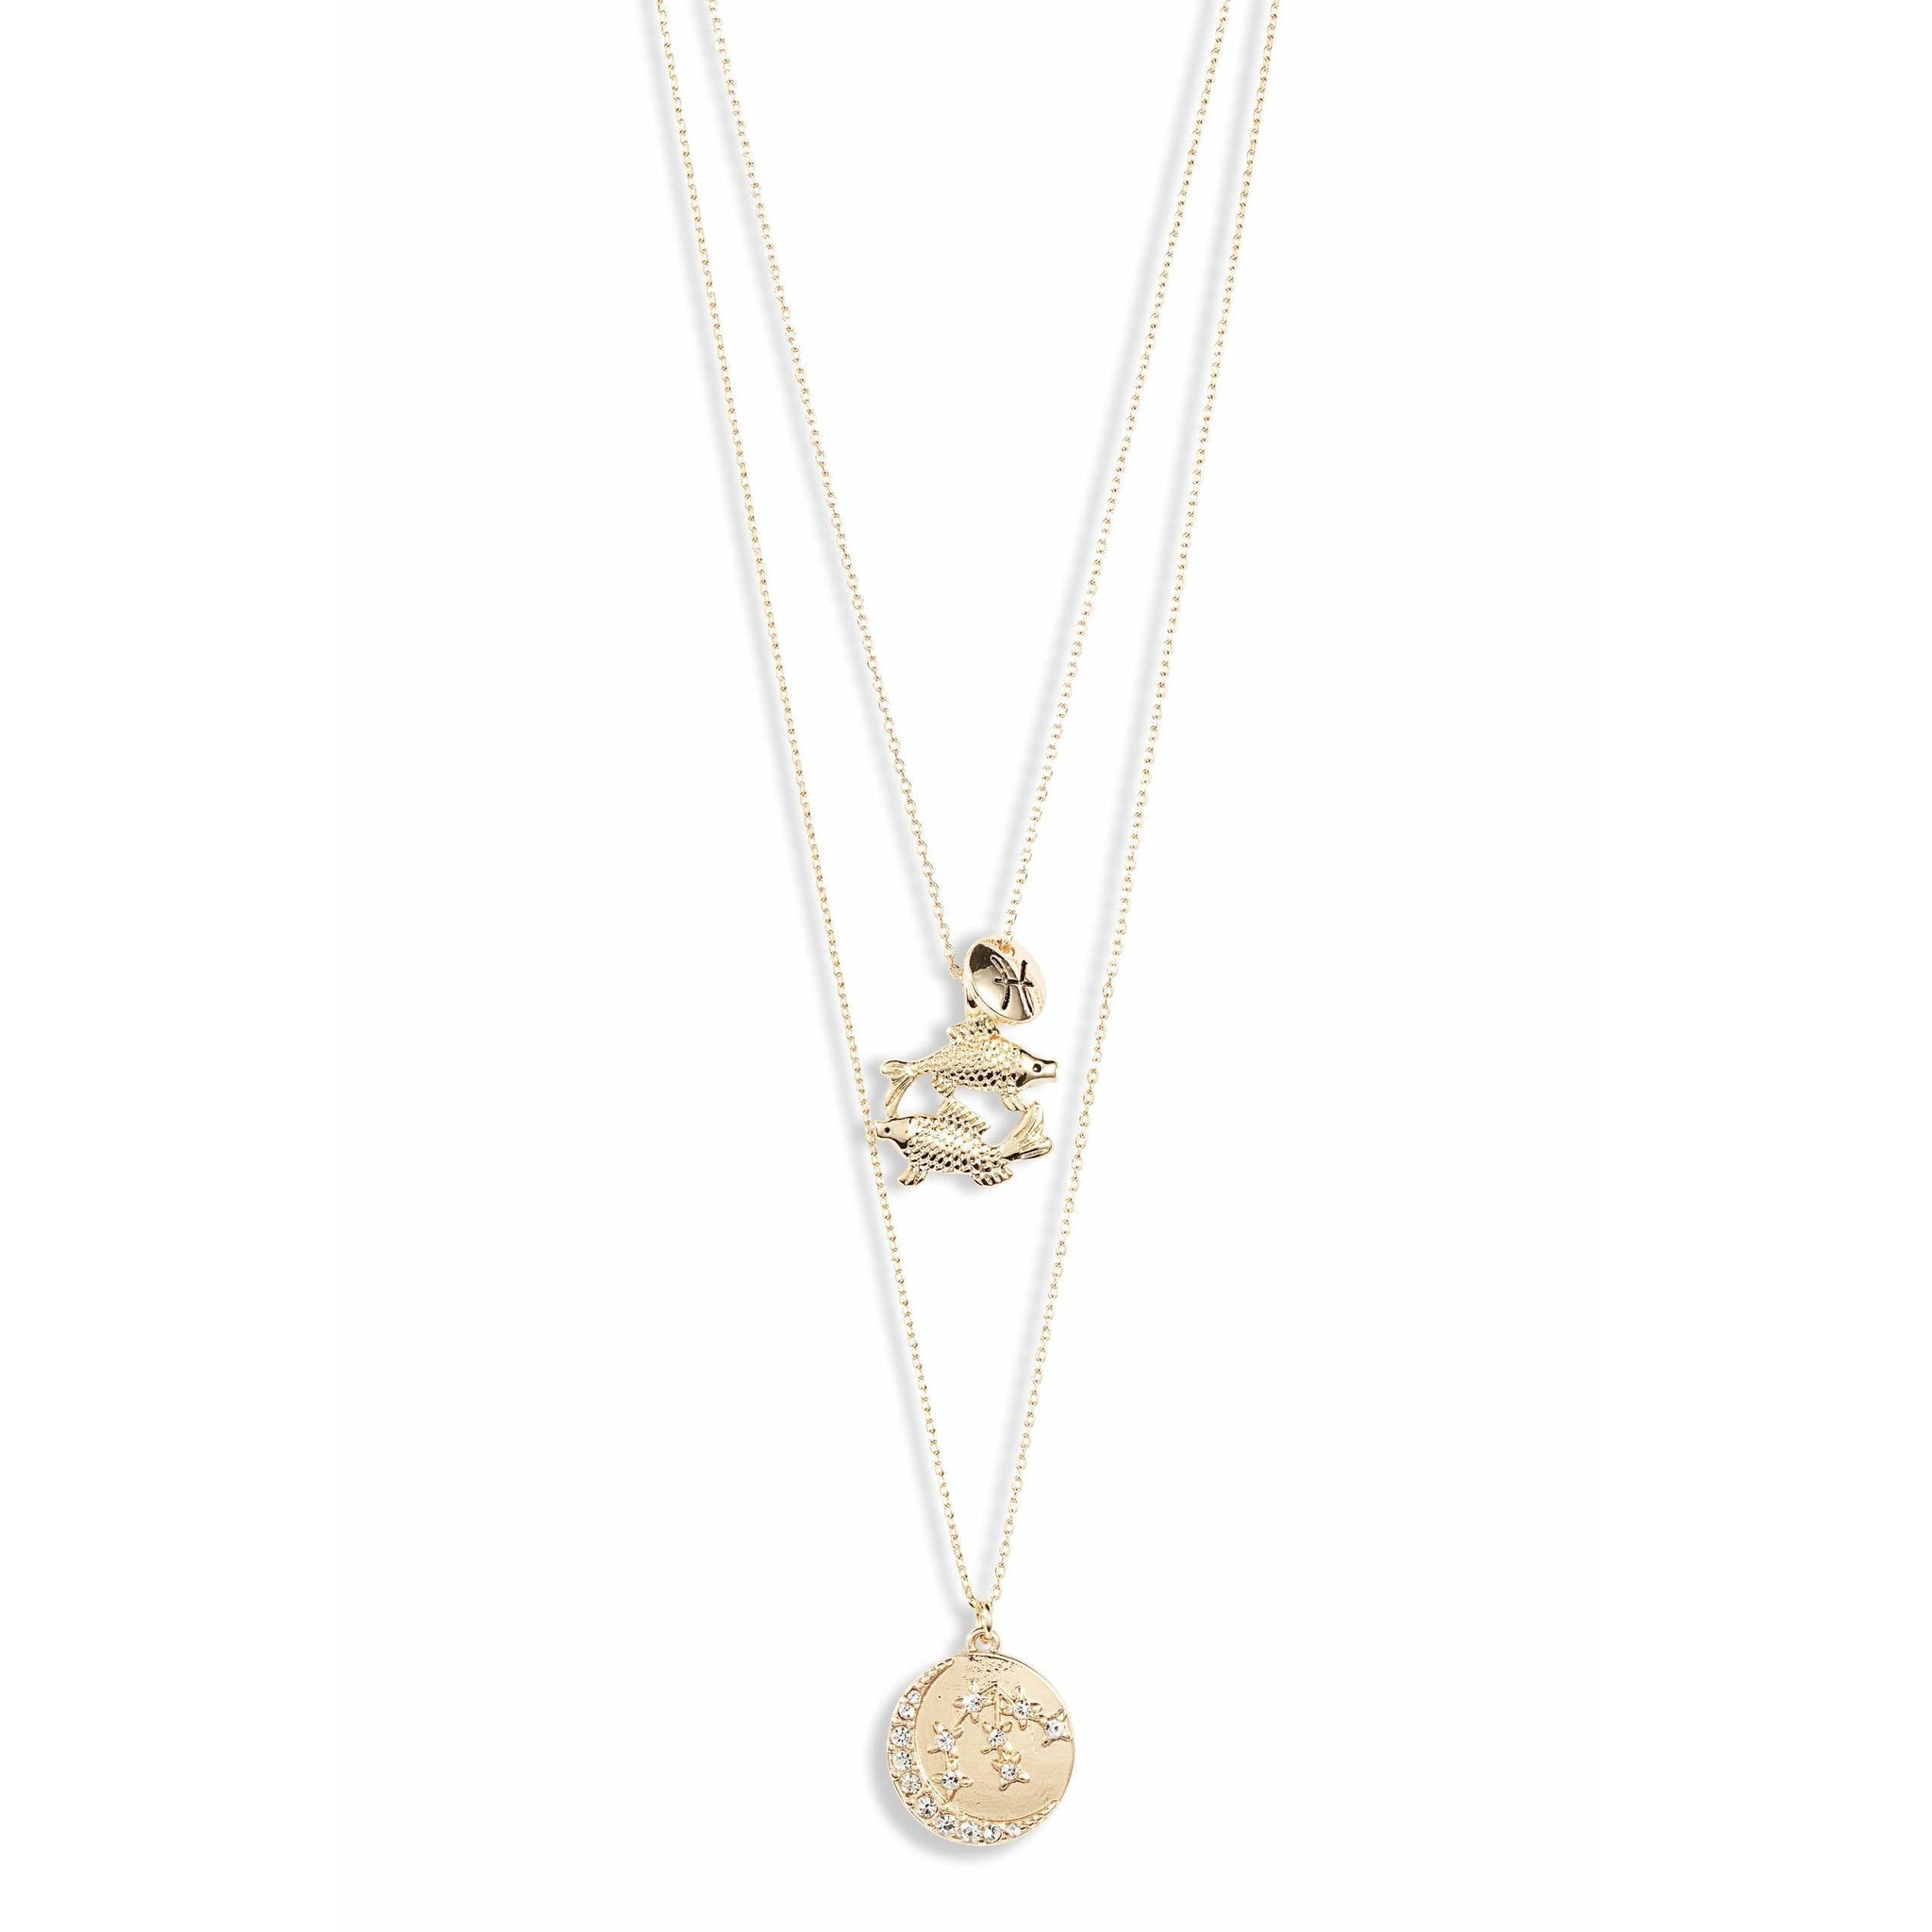 Astrological Charm Necklace - Pisces